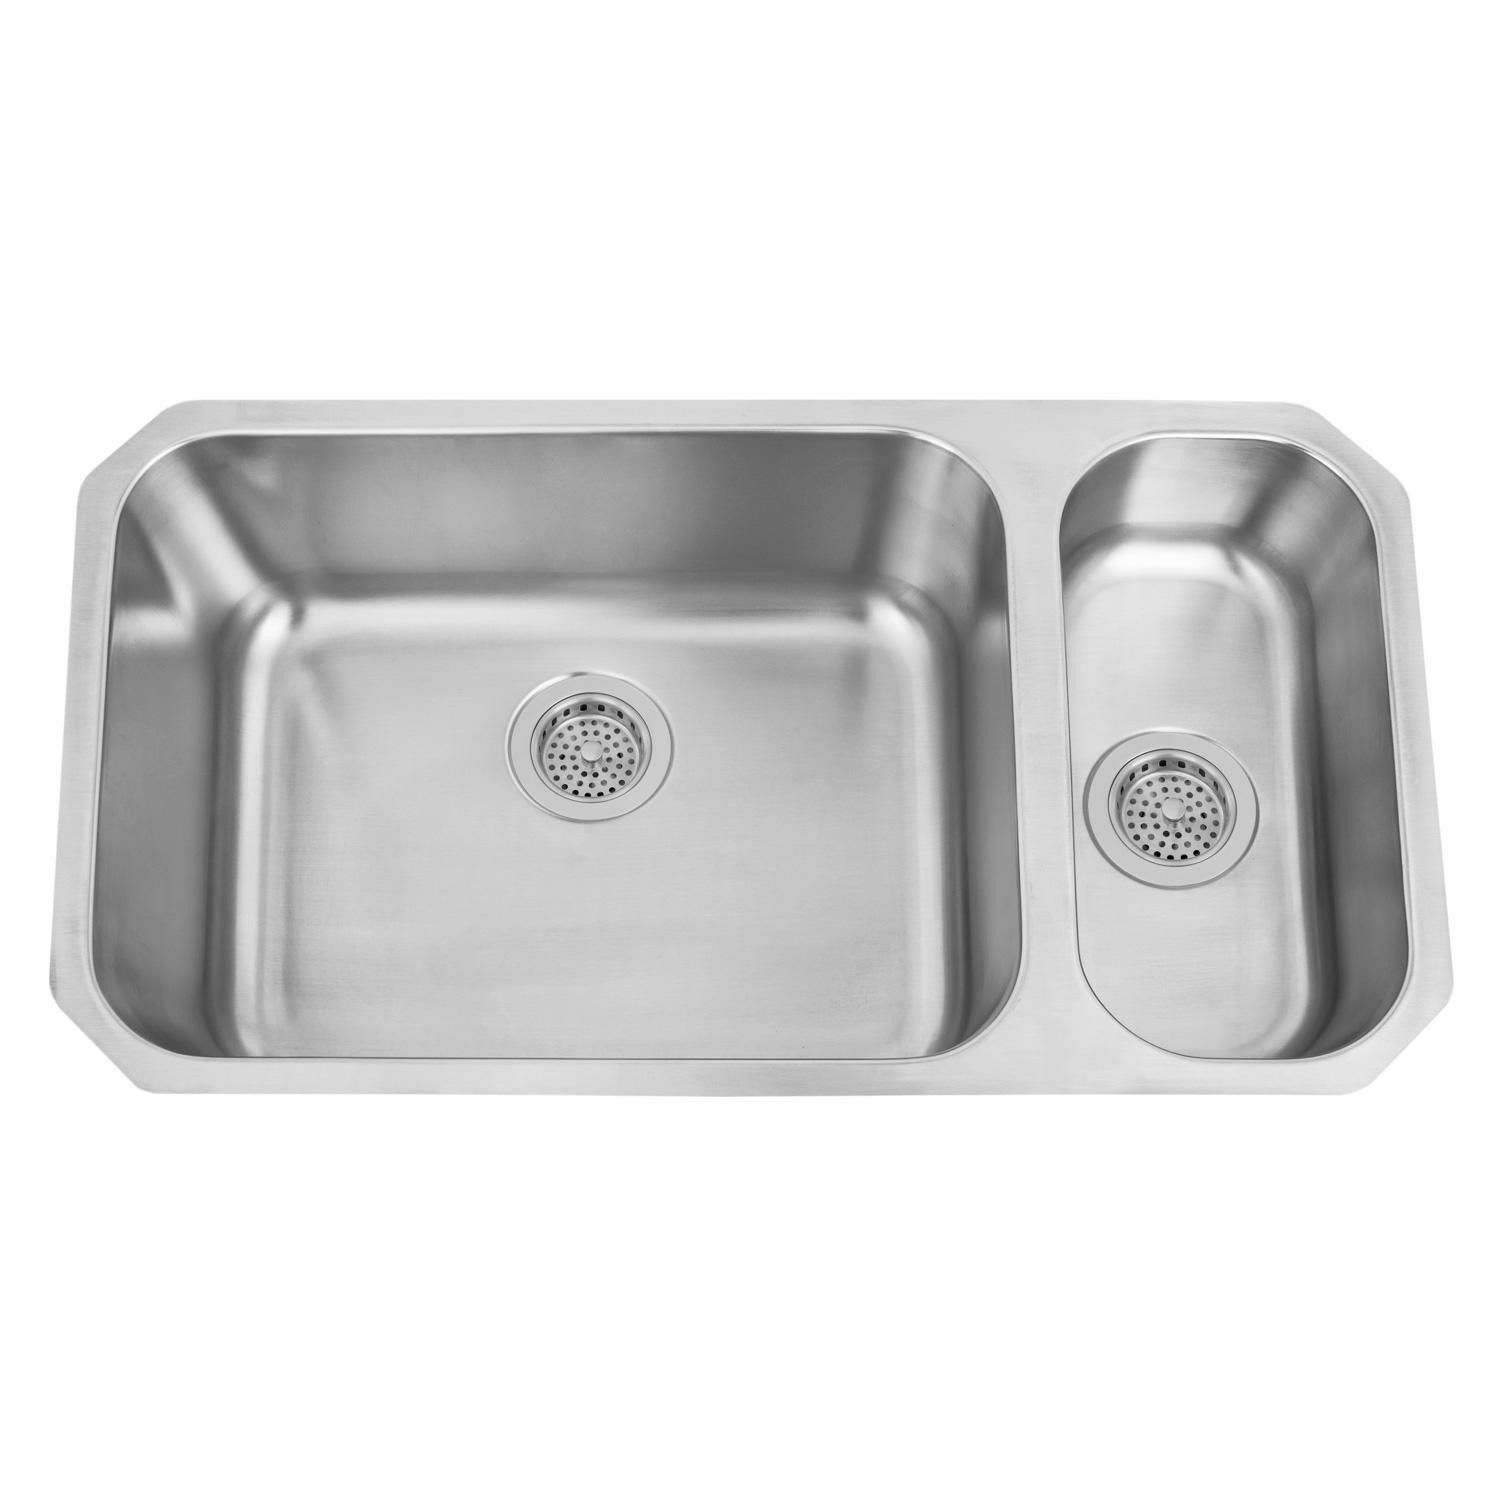 32 Infinite Wide 80 20 Offset Double Bowl Stainless Steel Undermount Sink Kuche Umbauen Bauernhaus Waschbecken Kleine Kuche